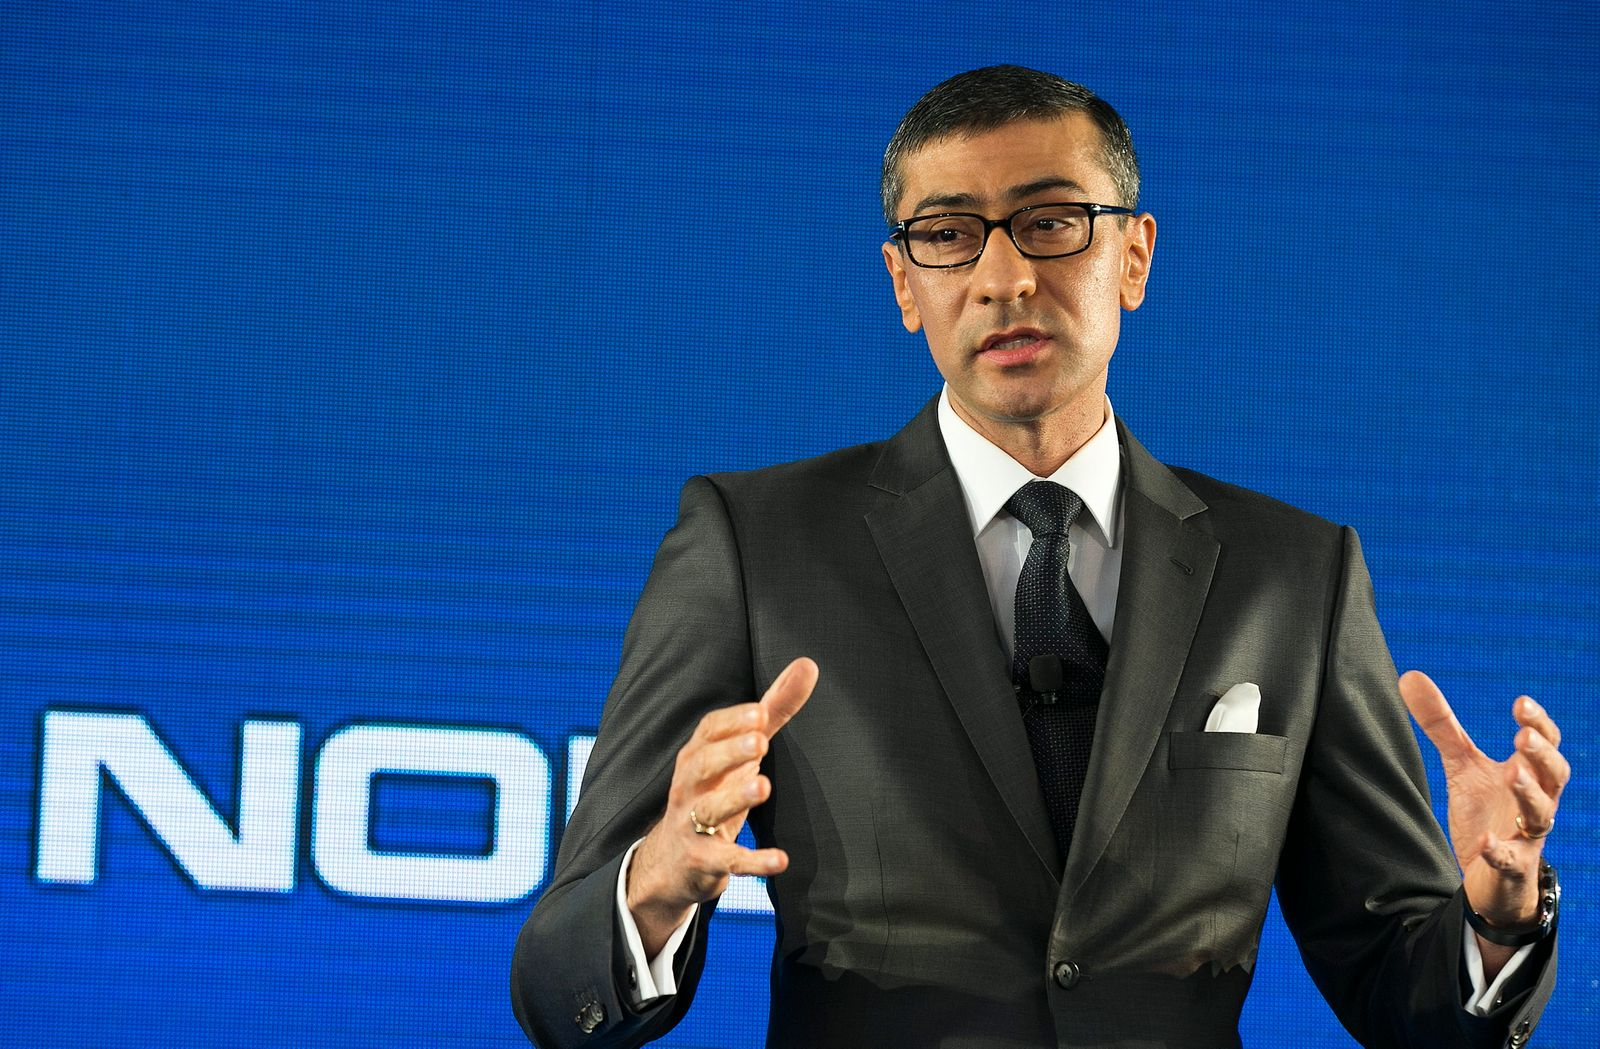 Nokia appoints Rajeev Suri as President and CEO